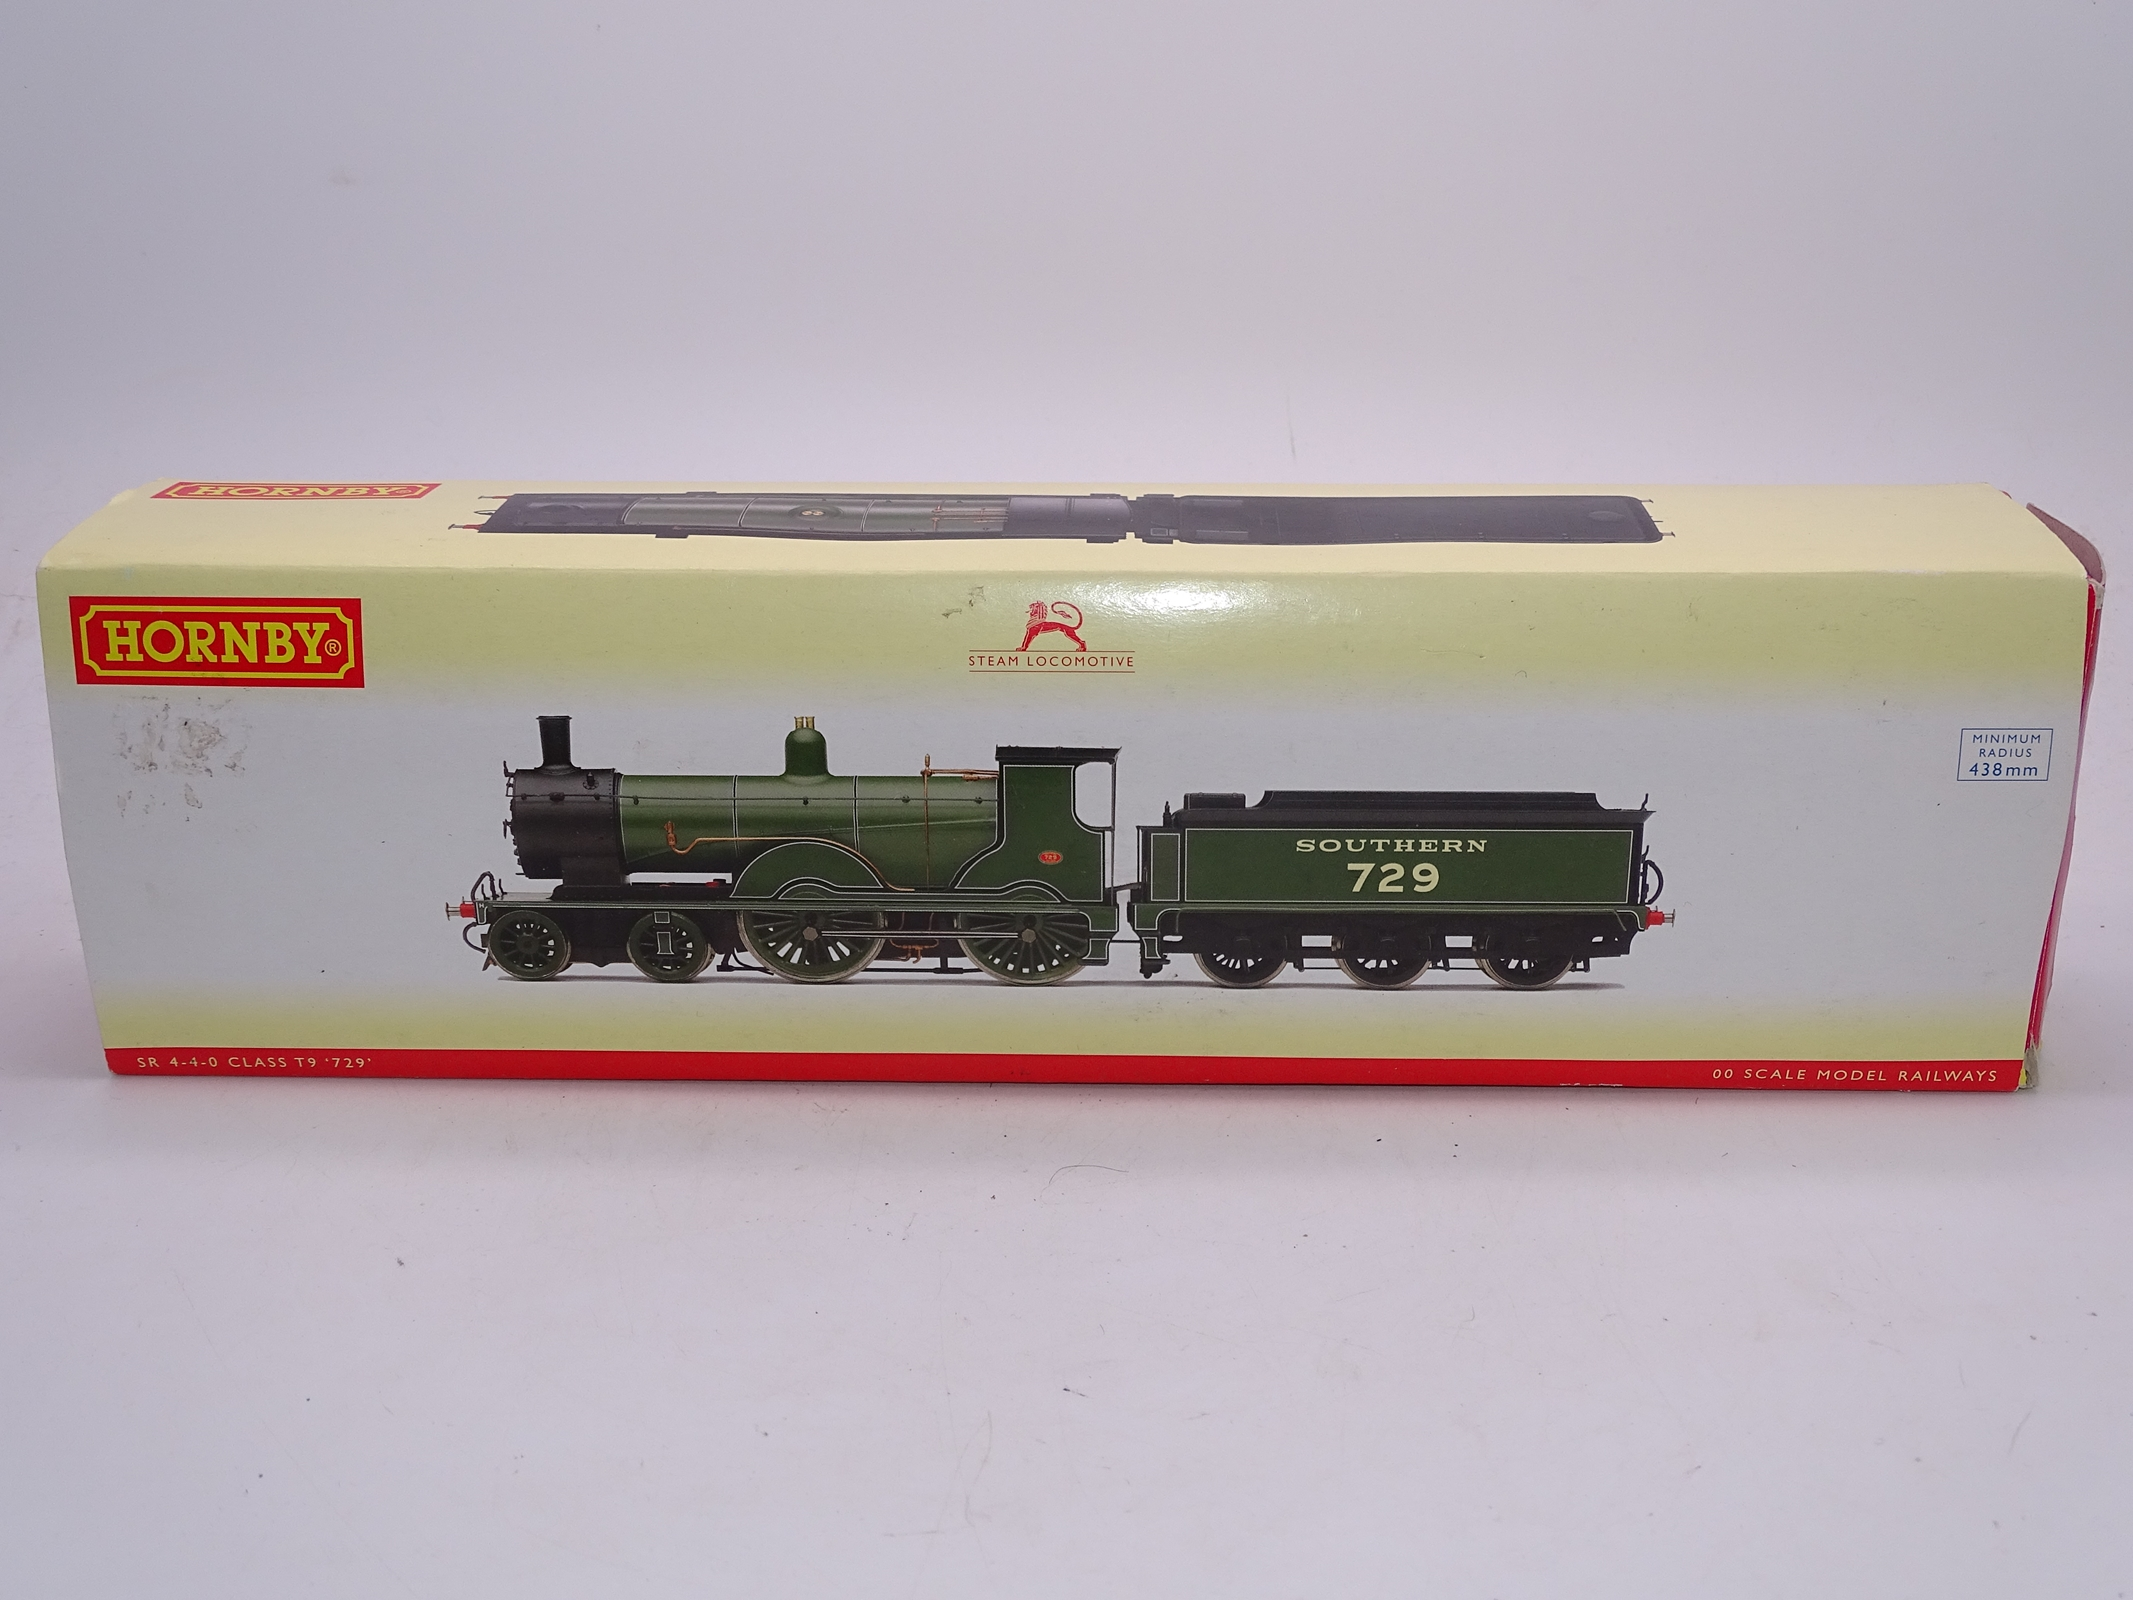 Lot 44 - OO Gauge -A Hornby R2711 Class T9 steam locomotive in Southern Railway livery - numbered 729 - VG in